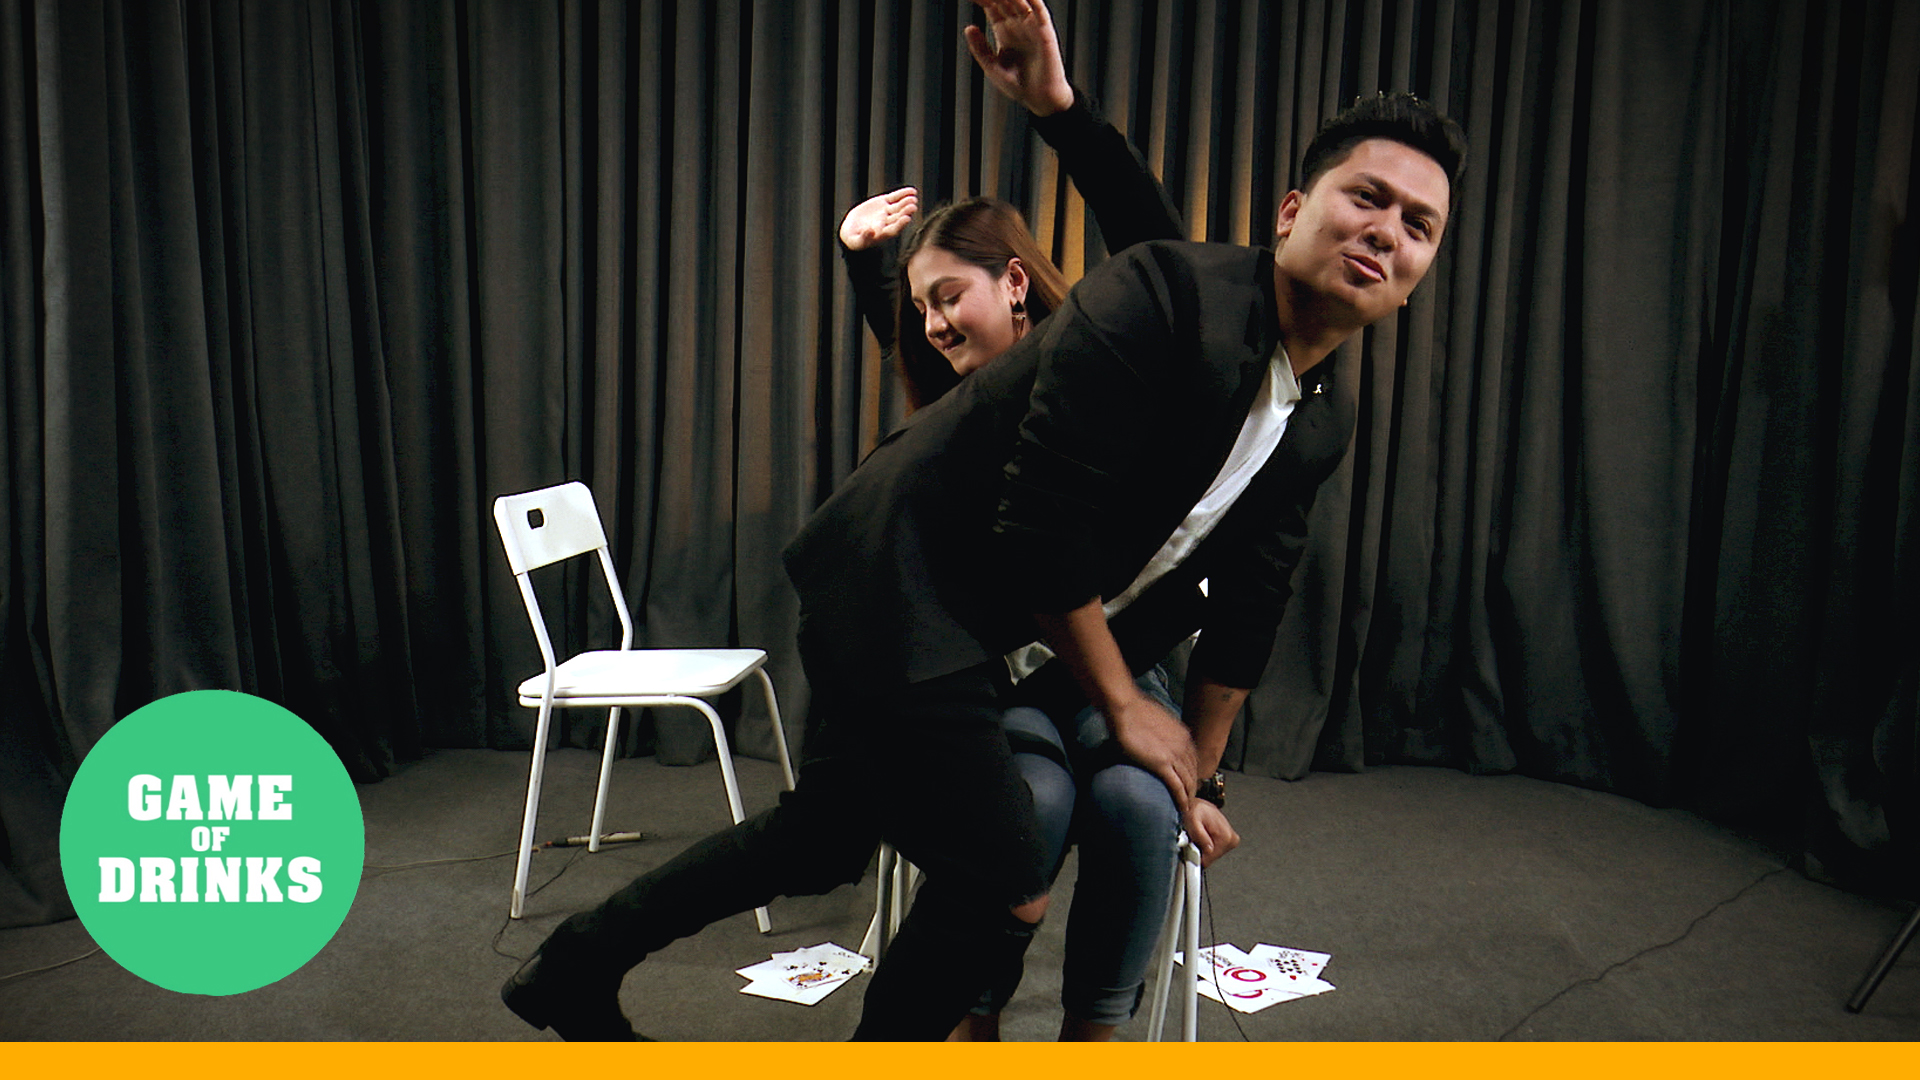 Does spanking exist in your relationship?   Game of Drinks / GOD